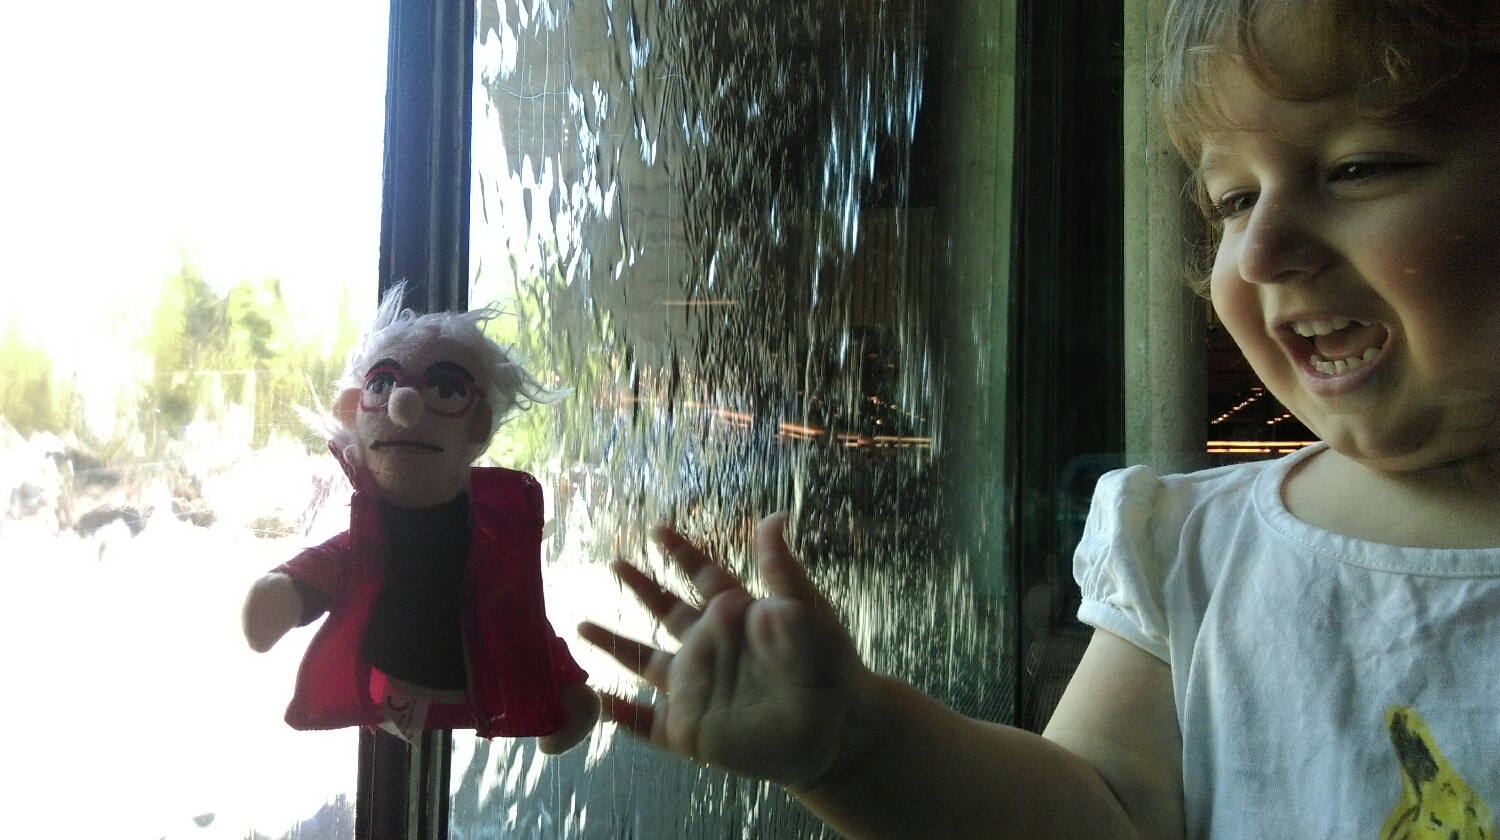 And everyone loves playing with the famous water wall, even puppet pop artists!